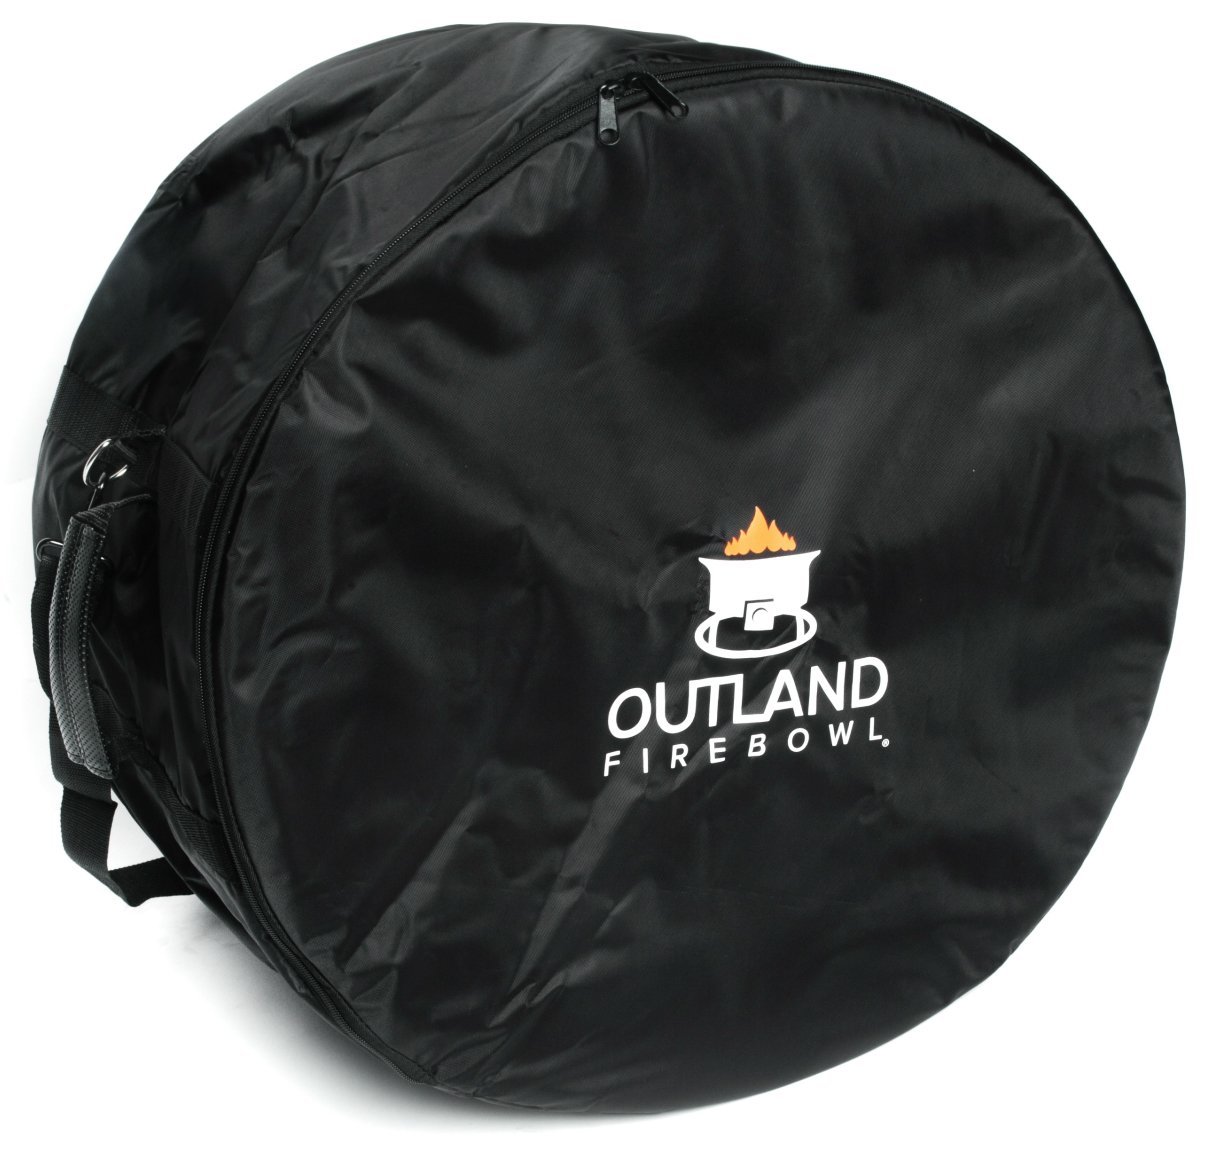 Outland Firebowl UV and Weather Resistant 761 Mega Carry Bag, Fits 24-Inch Diameter Outdoor Propane Gas Fire Pit Outland Living